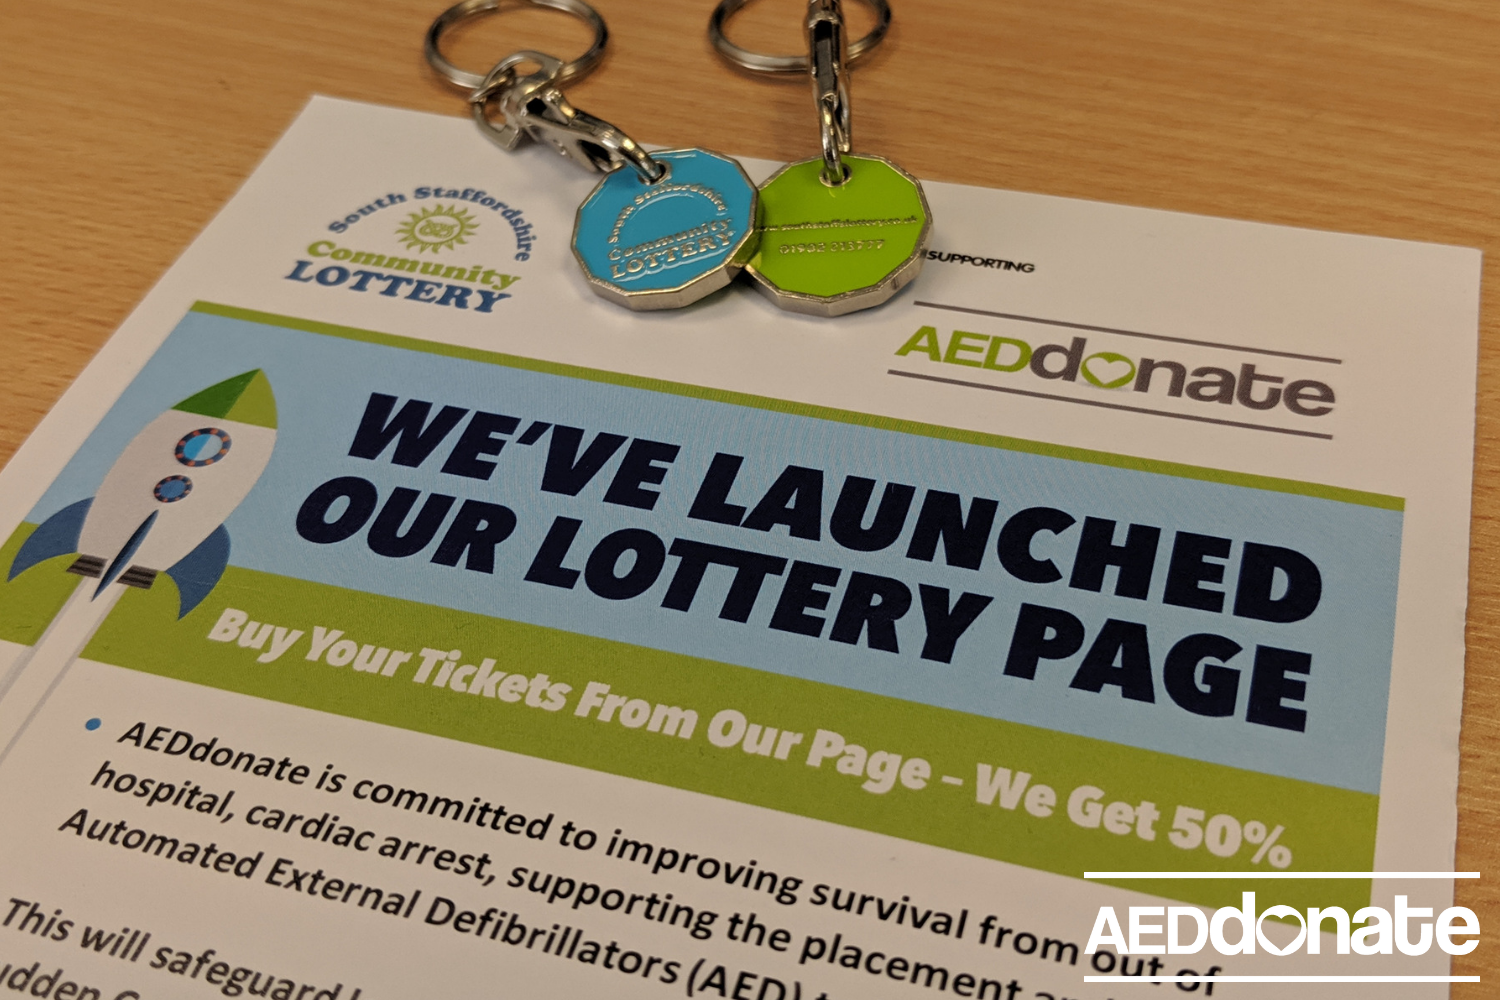 Sign up to the South Staffordshire Community Lottery